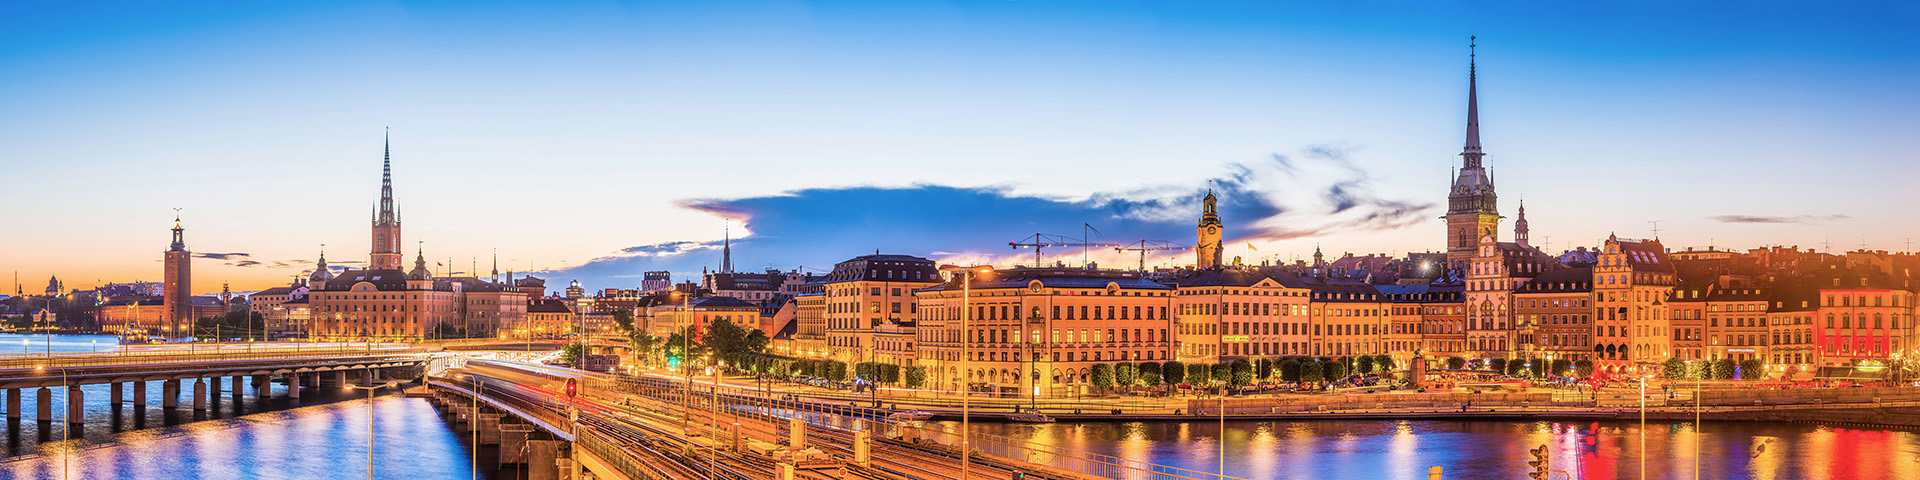 Clear blue summer sunset skies framing the landmarks of Stockholm, Sweden's vibrant capital city, from the iconic bell tower of City Hall to the colourful lights and iconic historic townhouses, restaurants and bars of Gamla Stan.